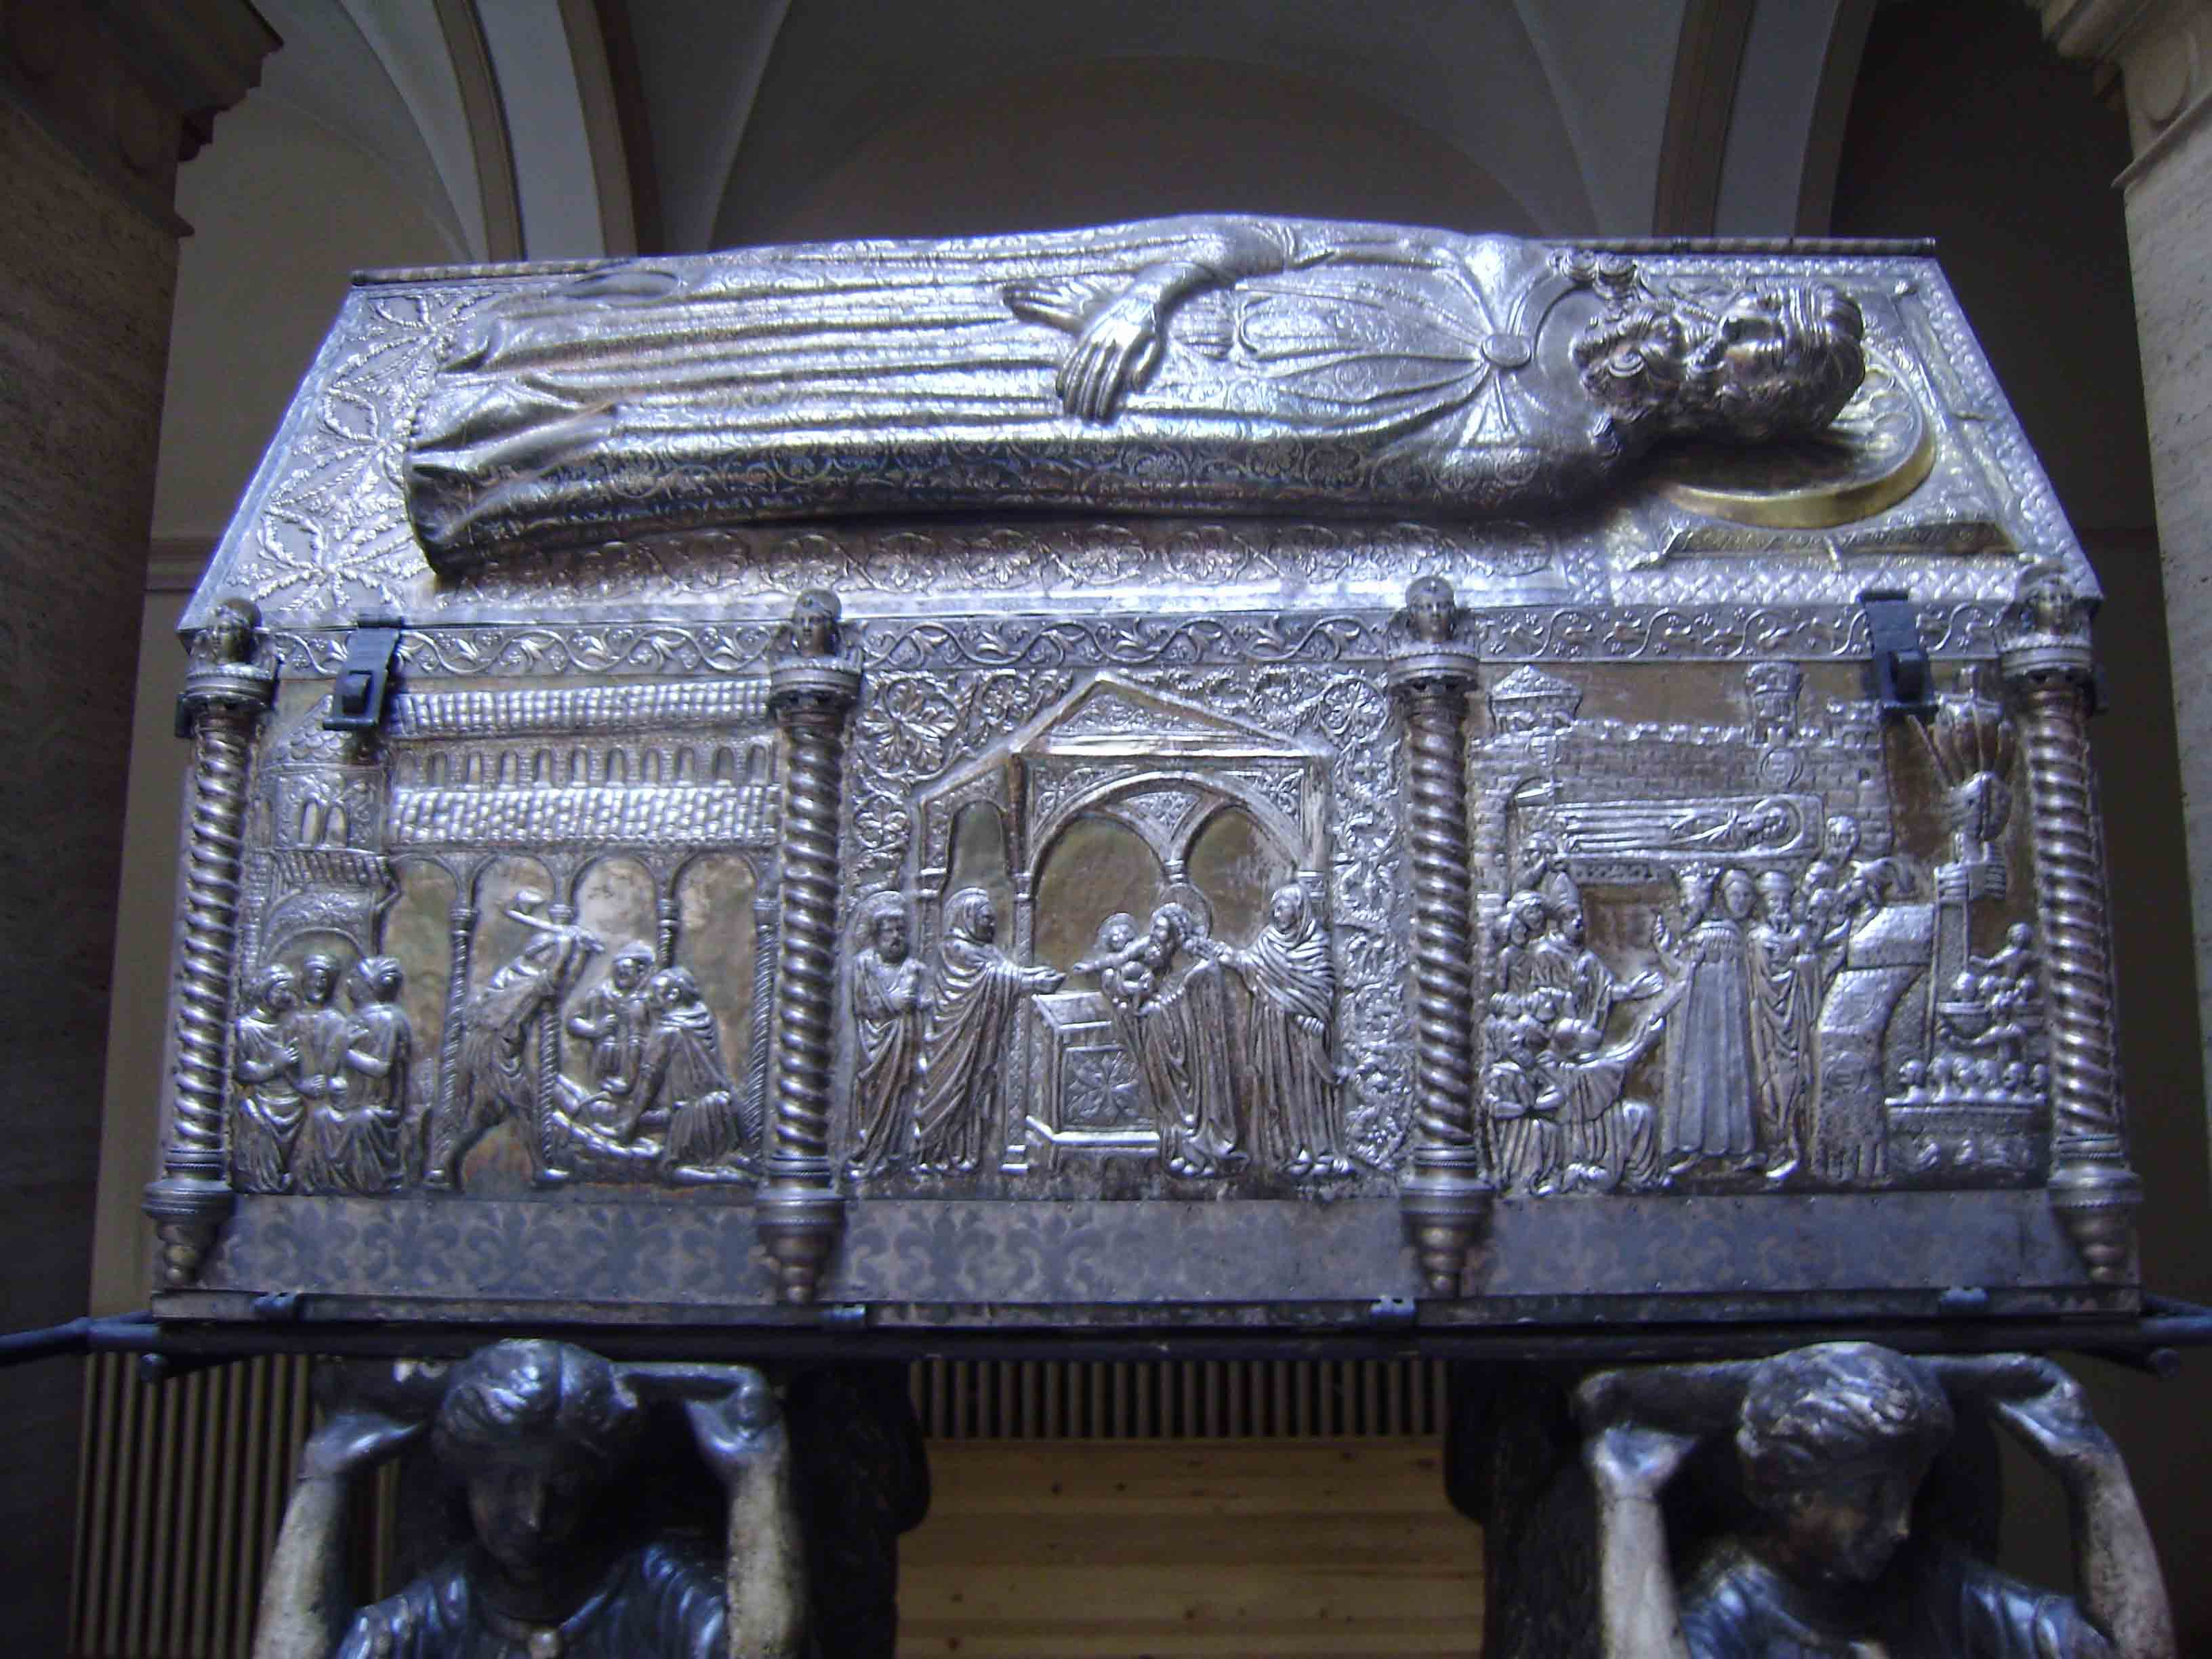 ST.SIMON'S SARCOPHAGUS - REPLICA, ST. SIMON'S CHURCH, ZADAR